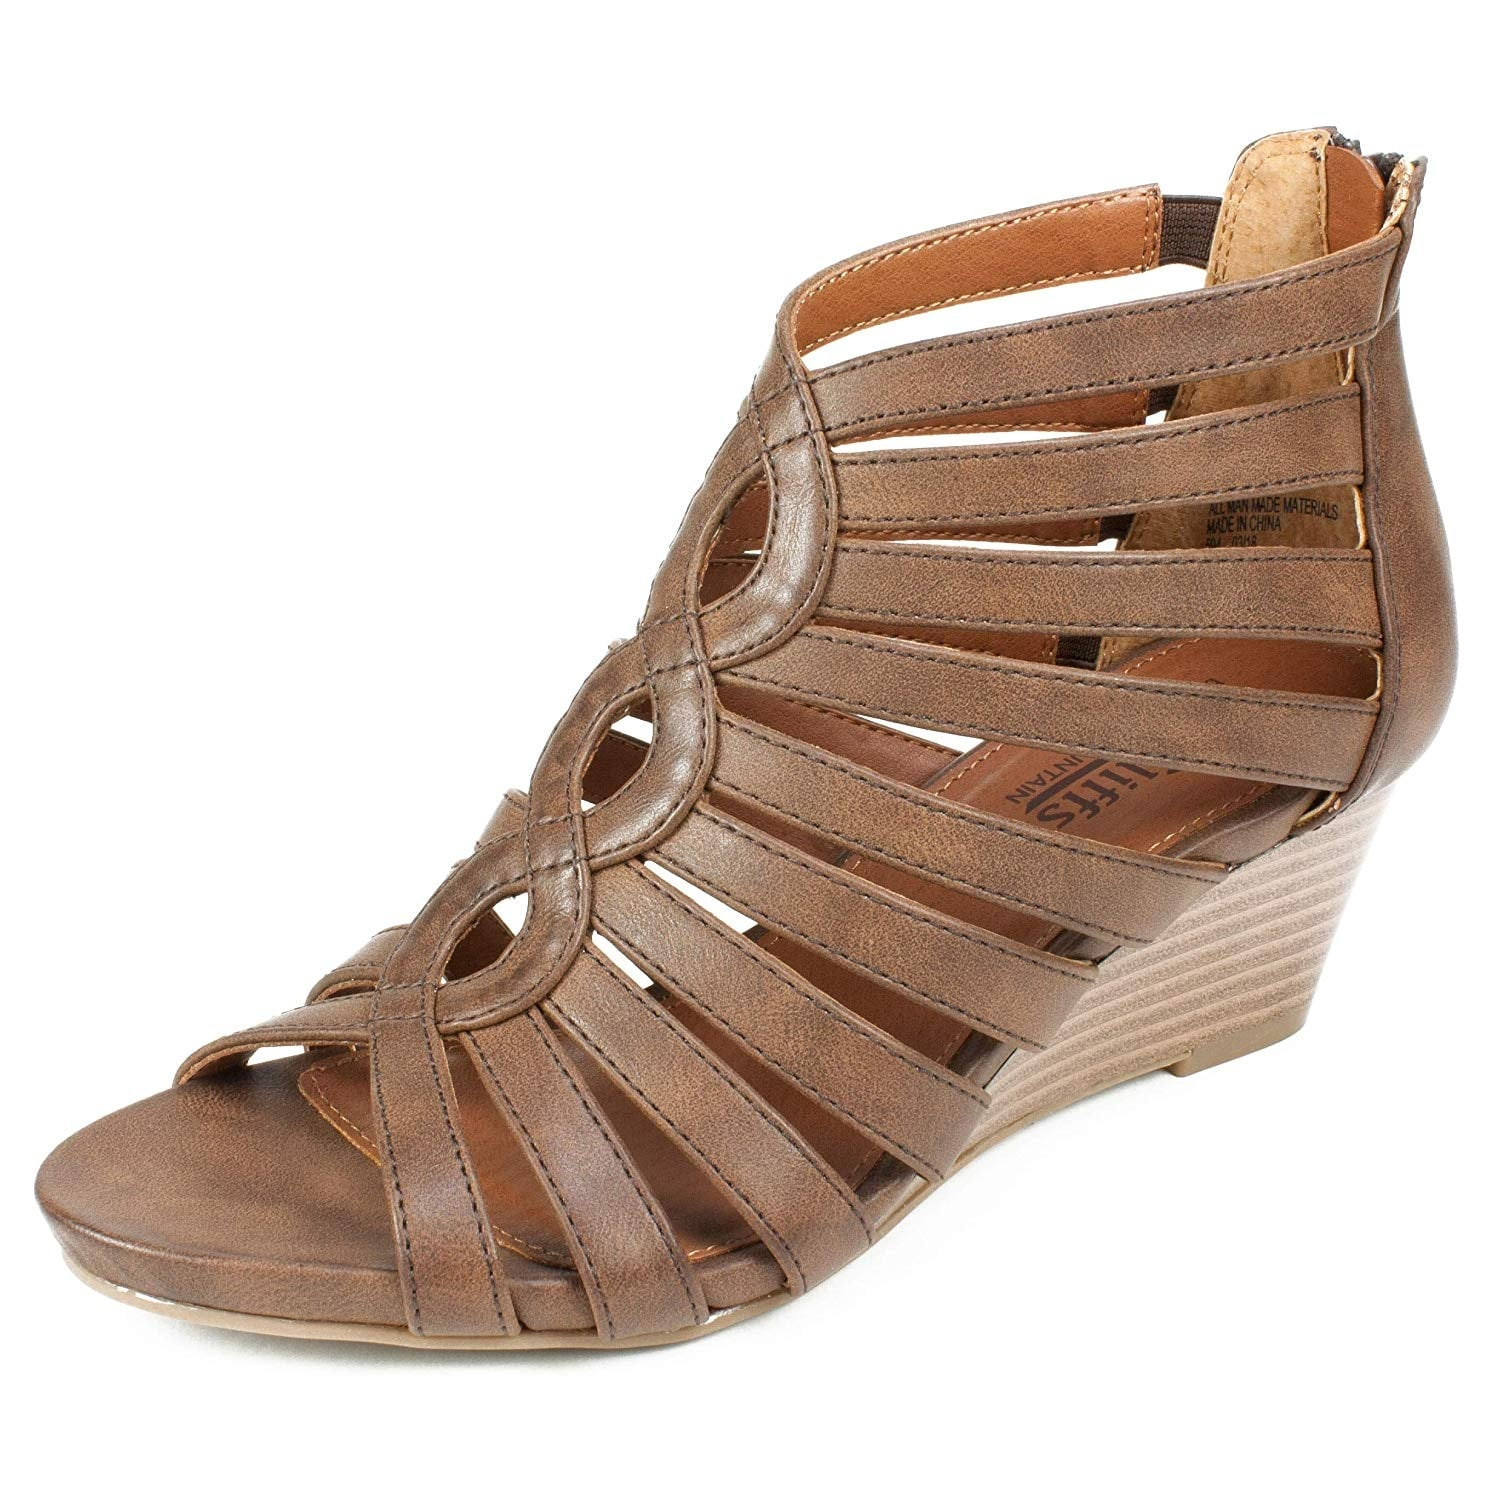 813b3b847315 Buy Cliffs By White Mountain Women s Sandals Online at Overstock ...